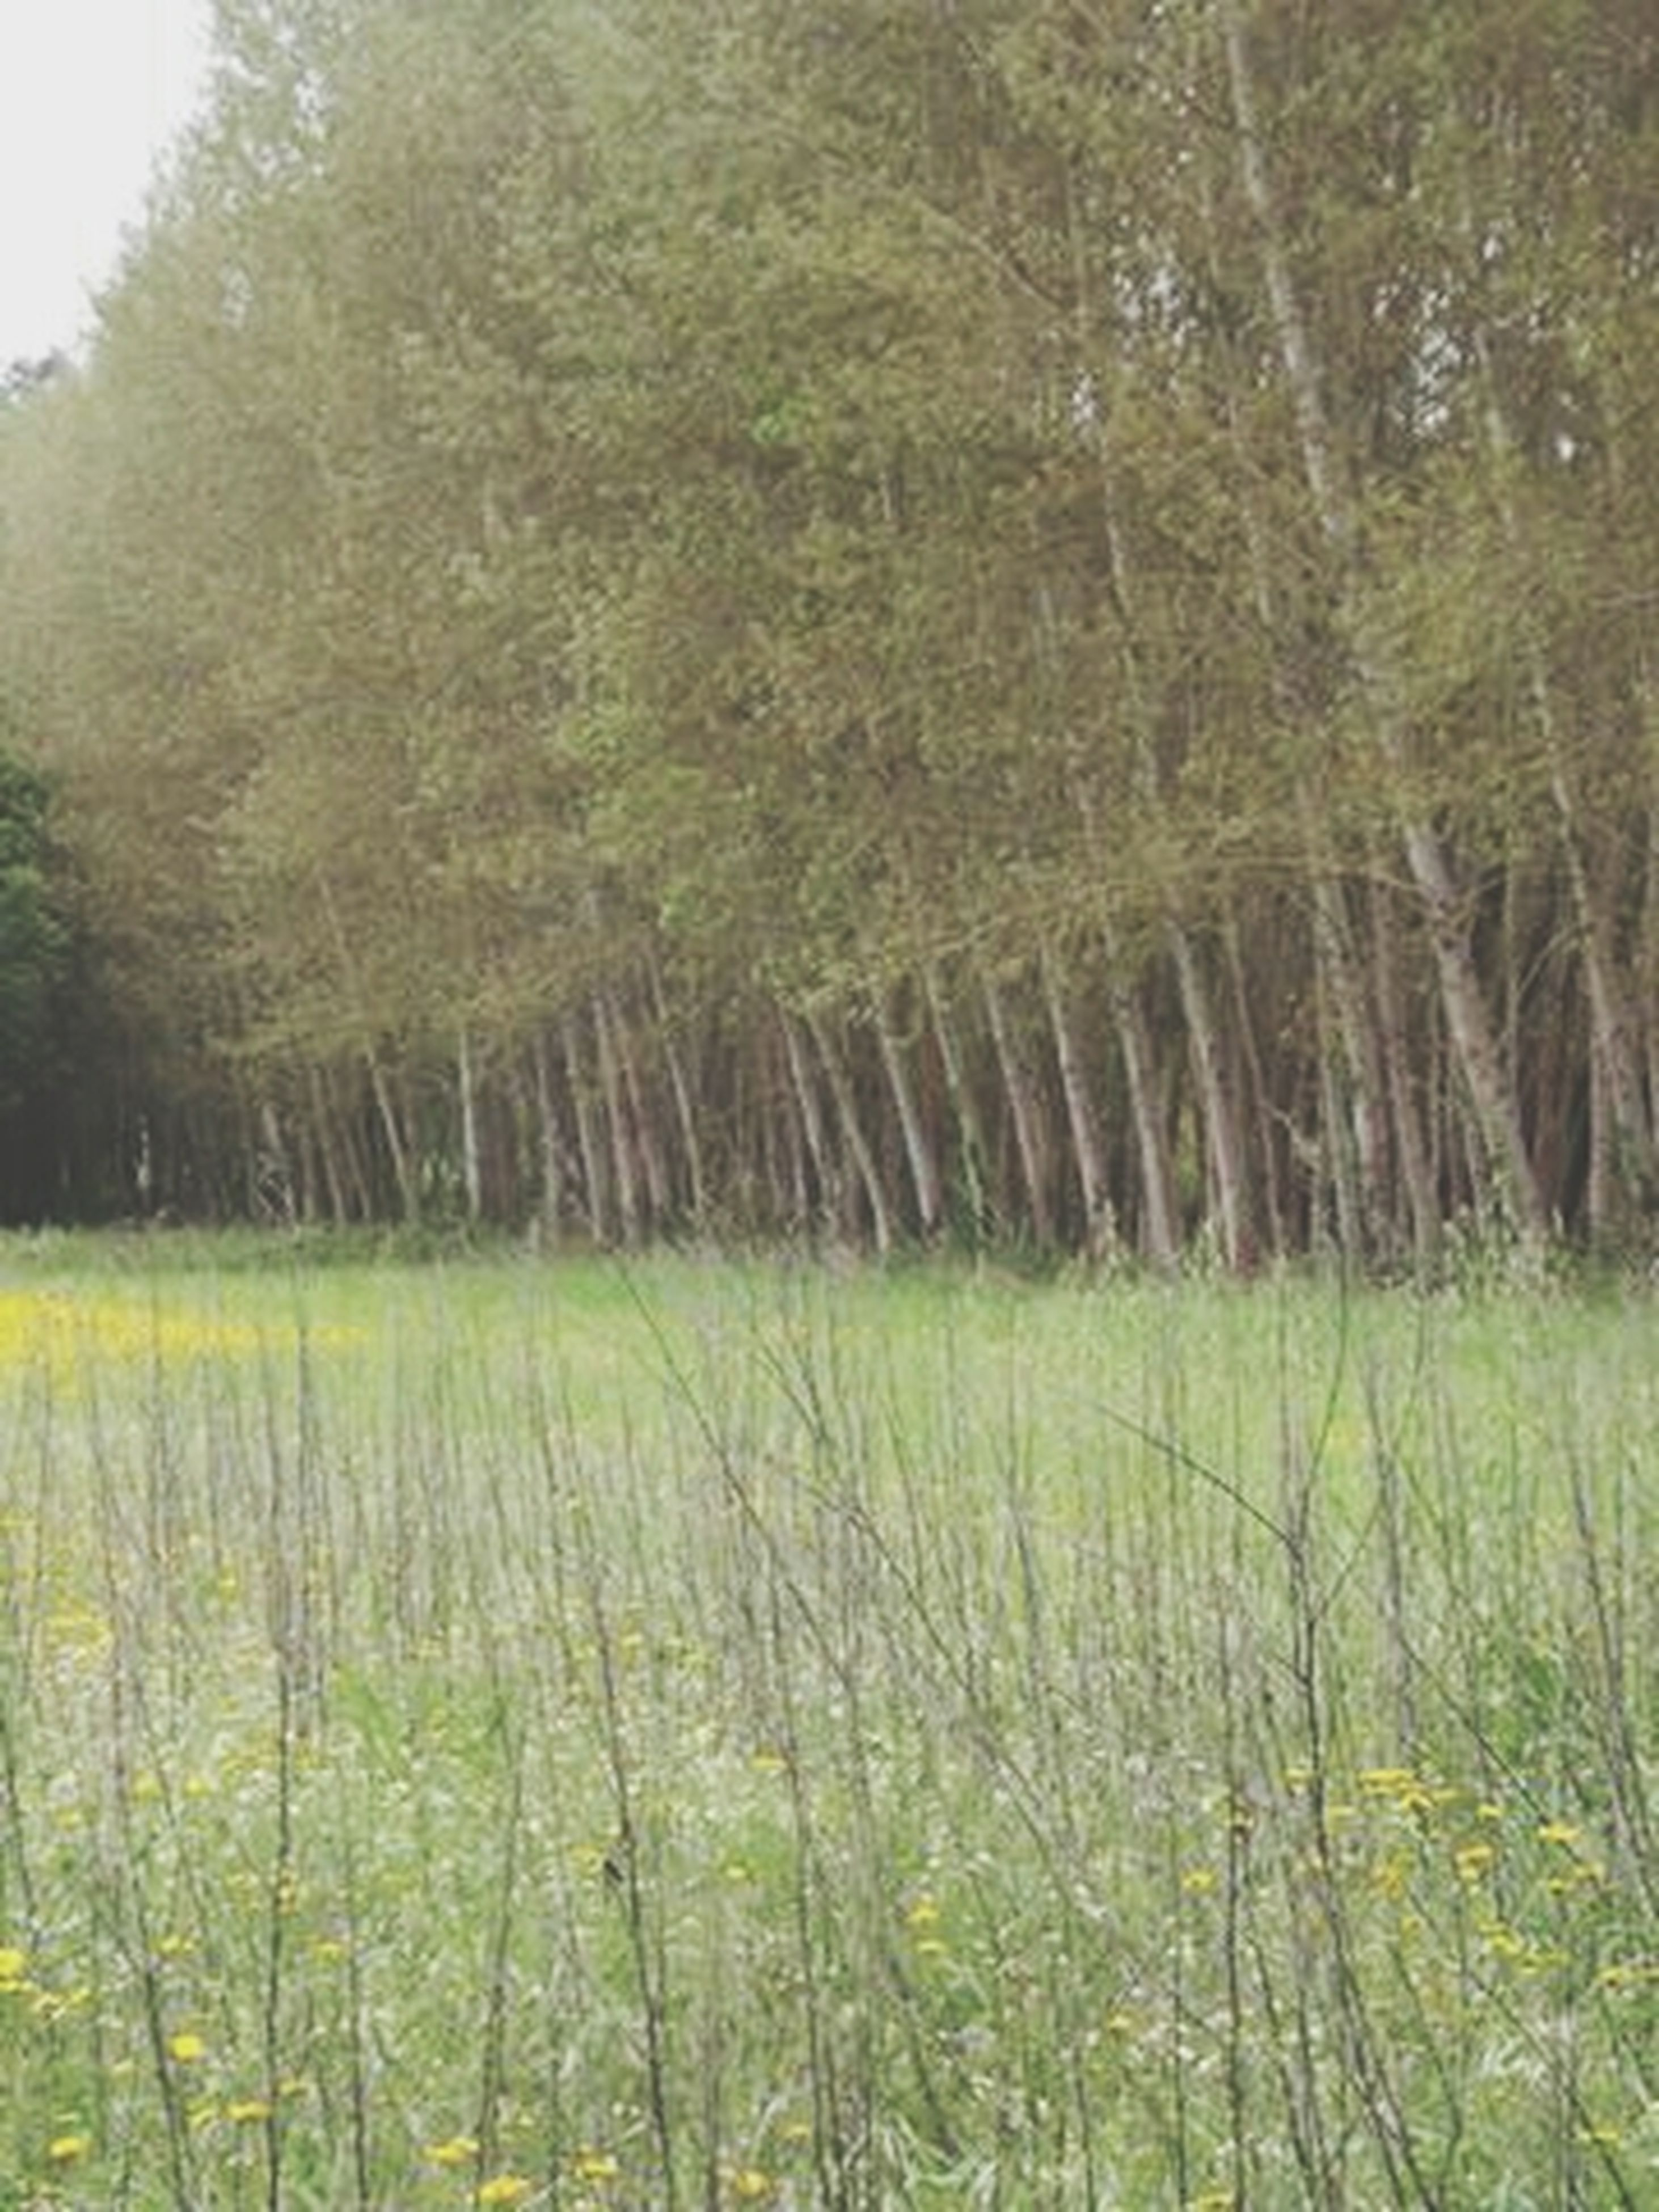 growth, field, tranquility, grass, nature, tranquil scene, beauty in nature, green color, tree, agriculture, plant, landscape, rural scene, scenics, crop, farm, growing, day, outdoors, no people